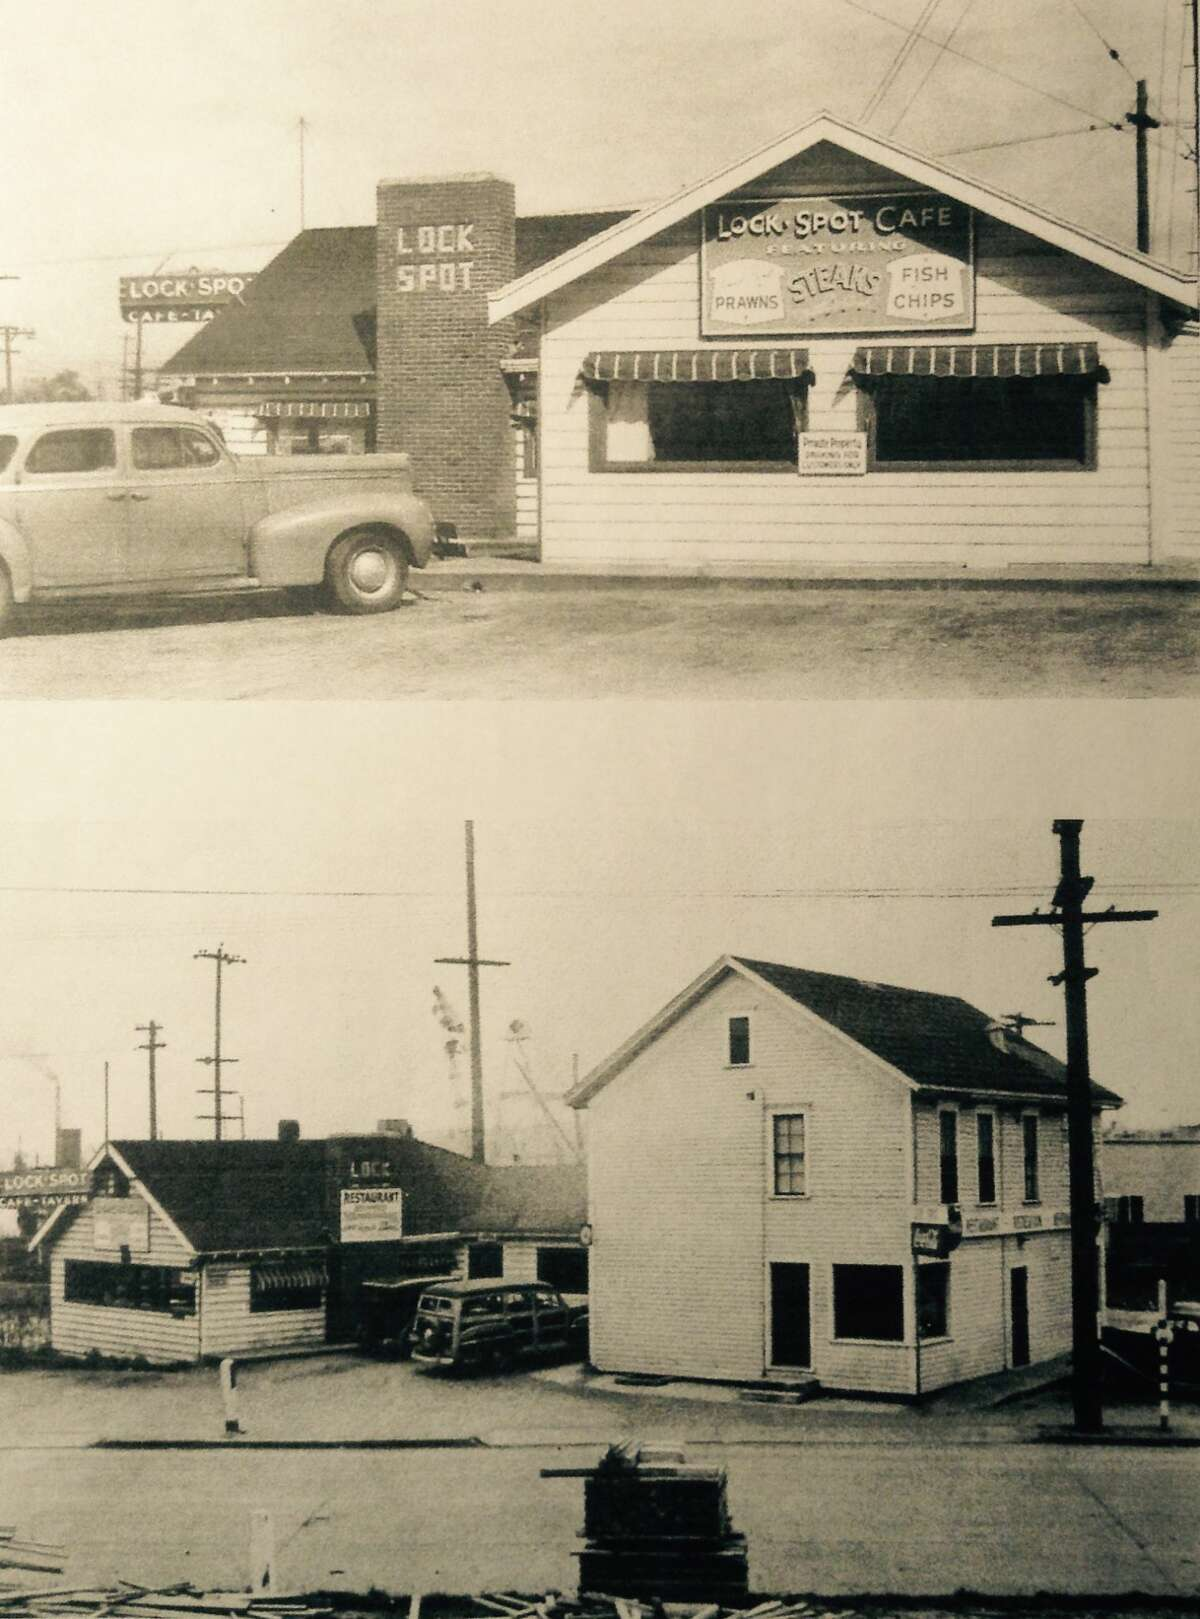 In a post card from 1932, the Lockspot Cafe reveals its historic digs.